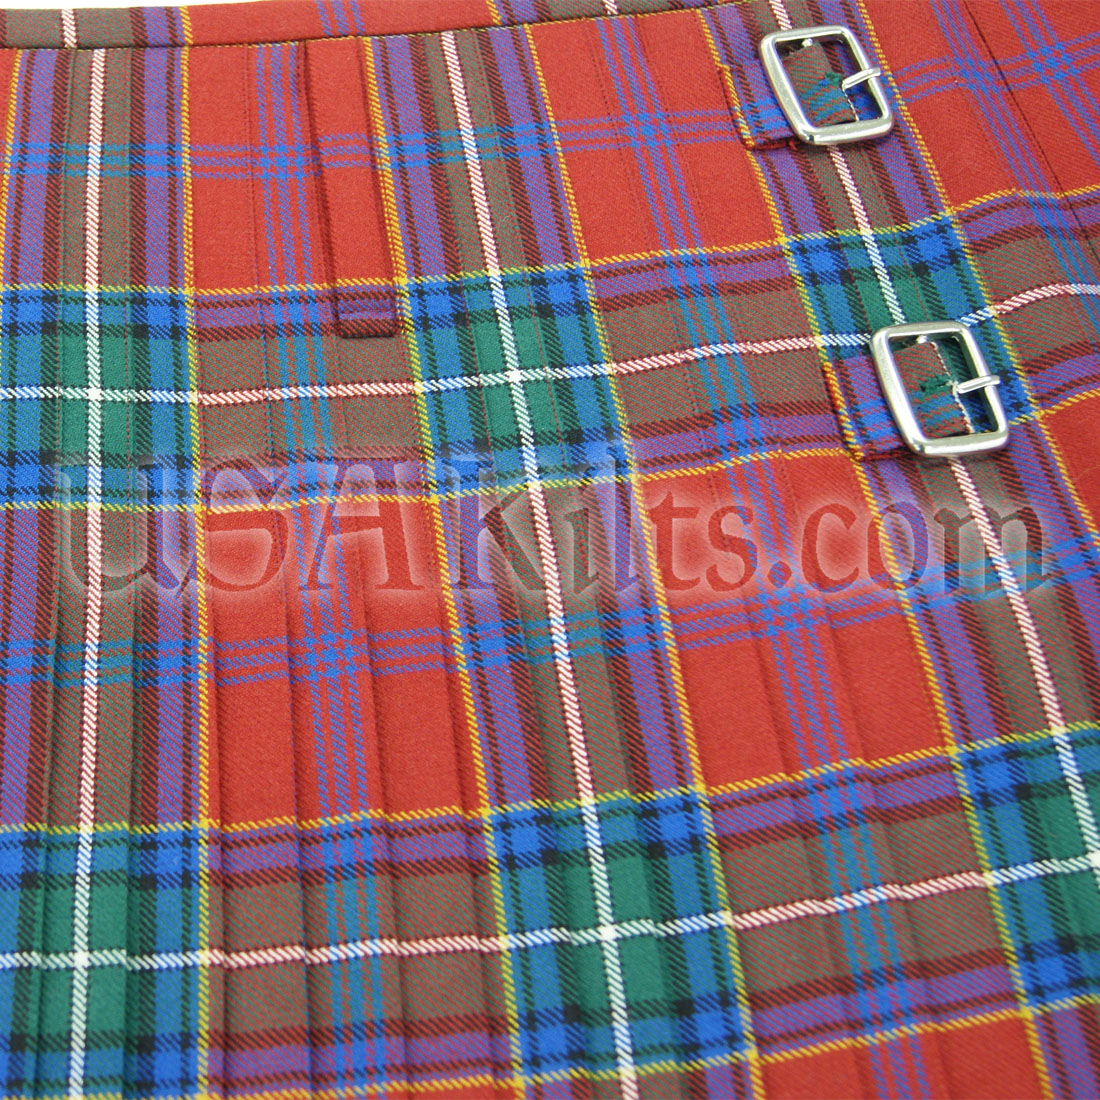 Top Stitched 8 Yard Kilt Pleats and Buckles